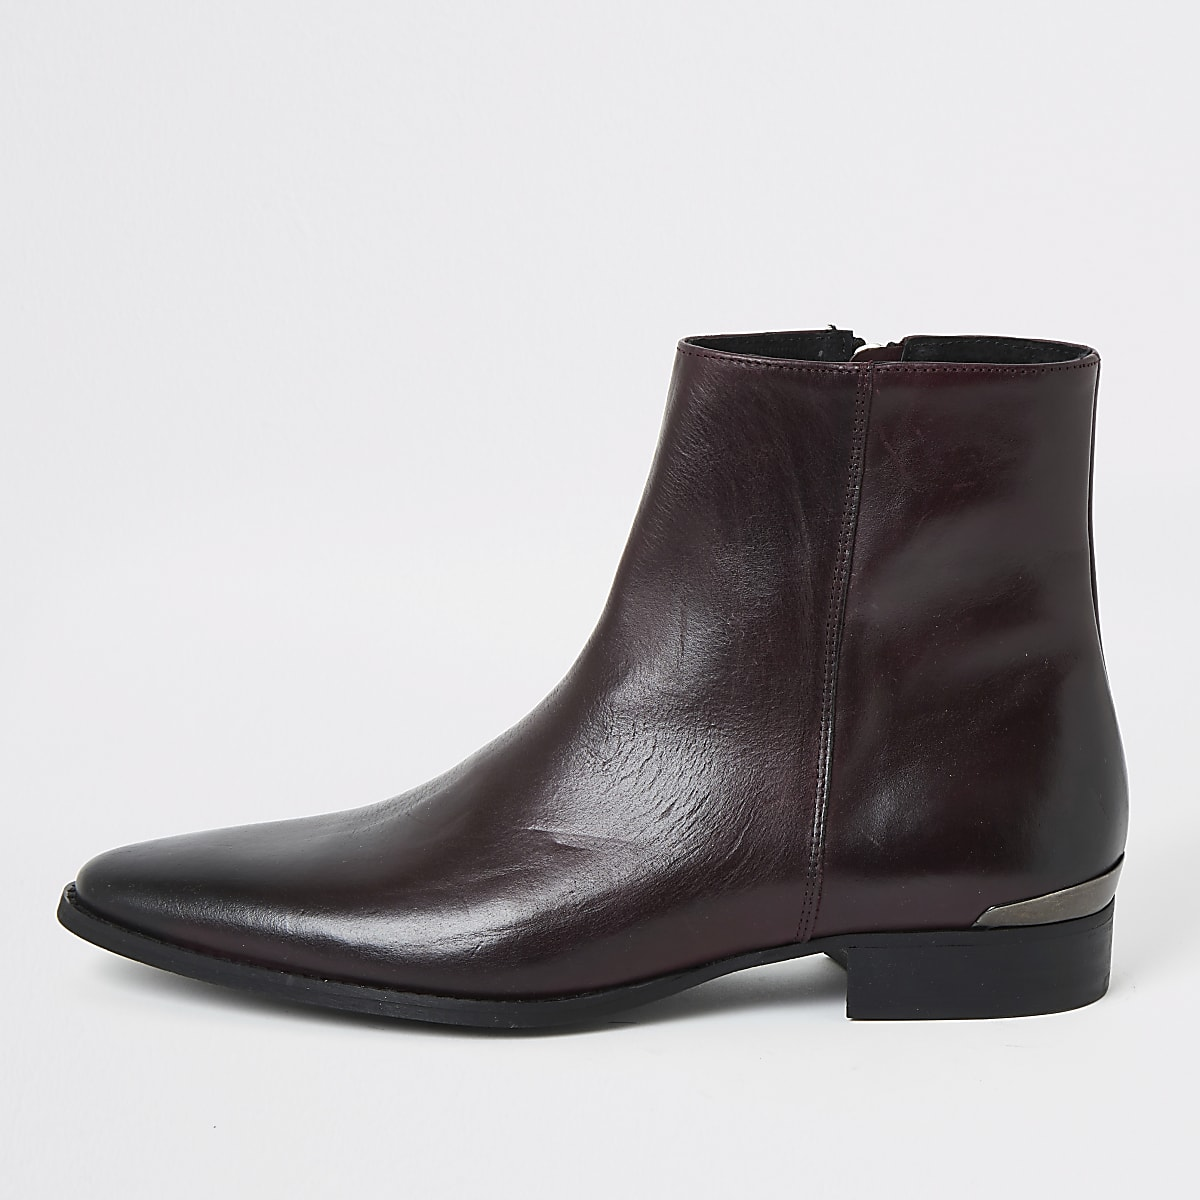 Dark red leather pointed boots